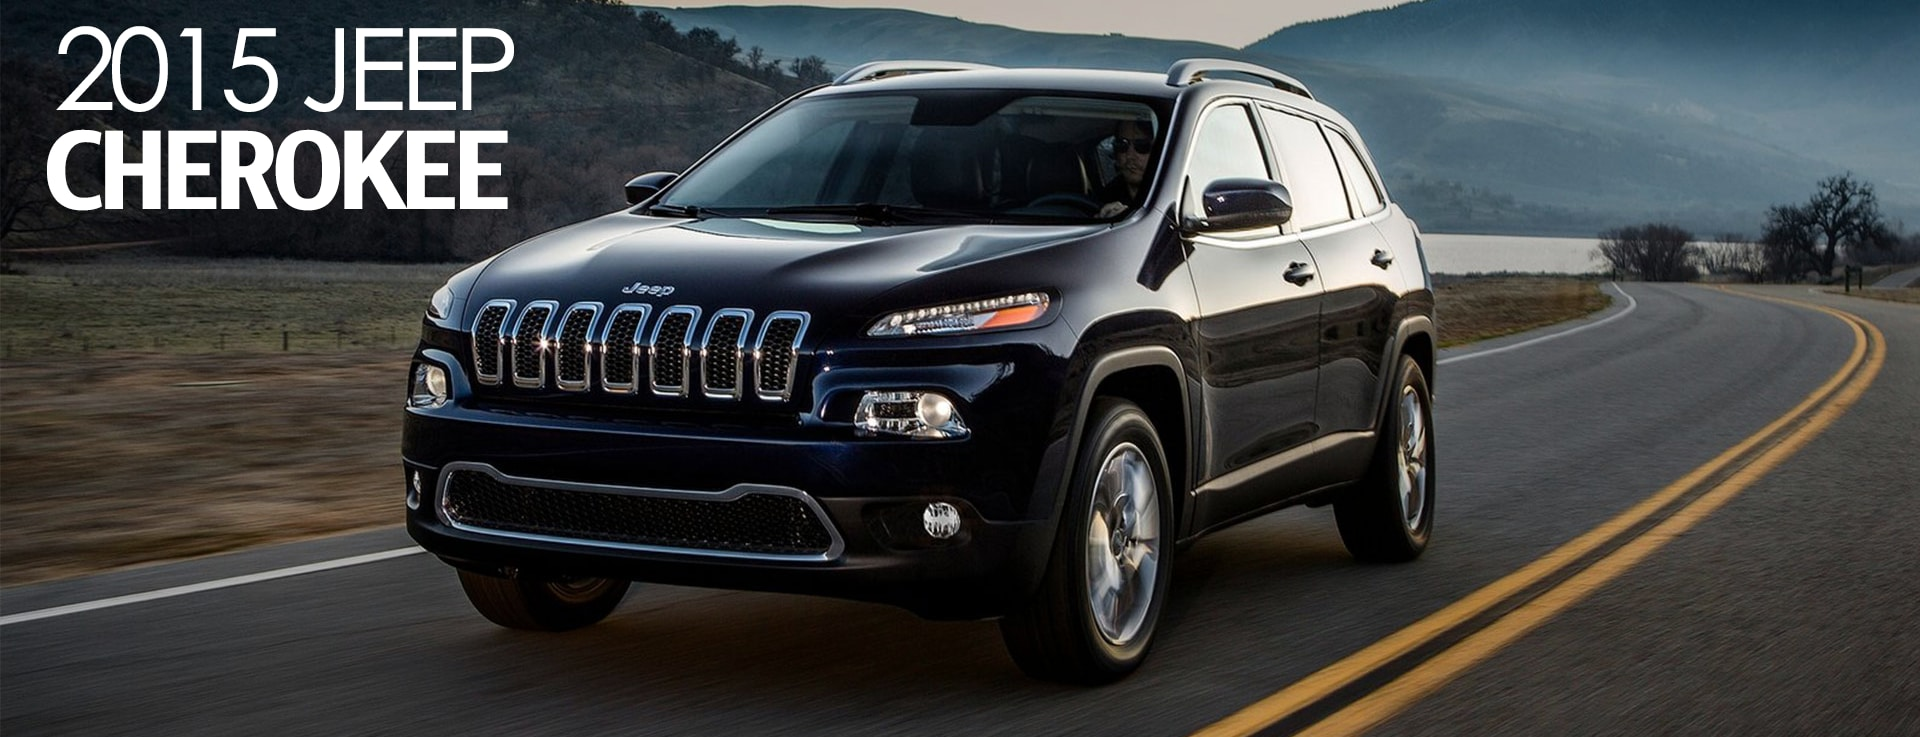 Marvelous Find A 2015 Jeep Cherokee In Sandy